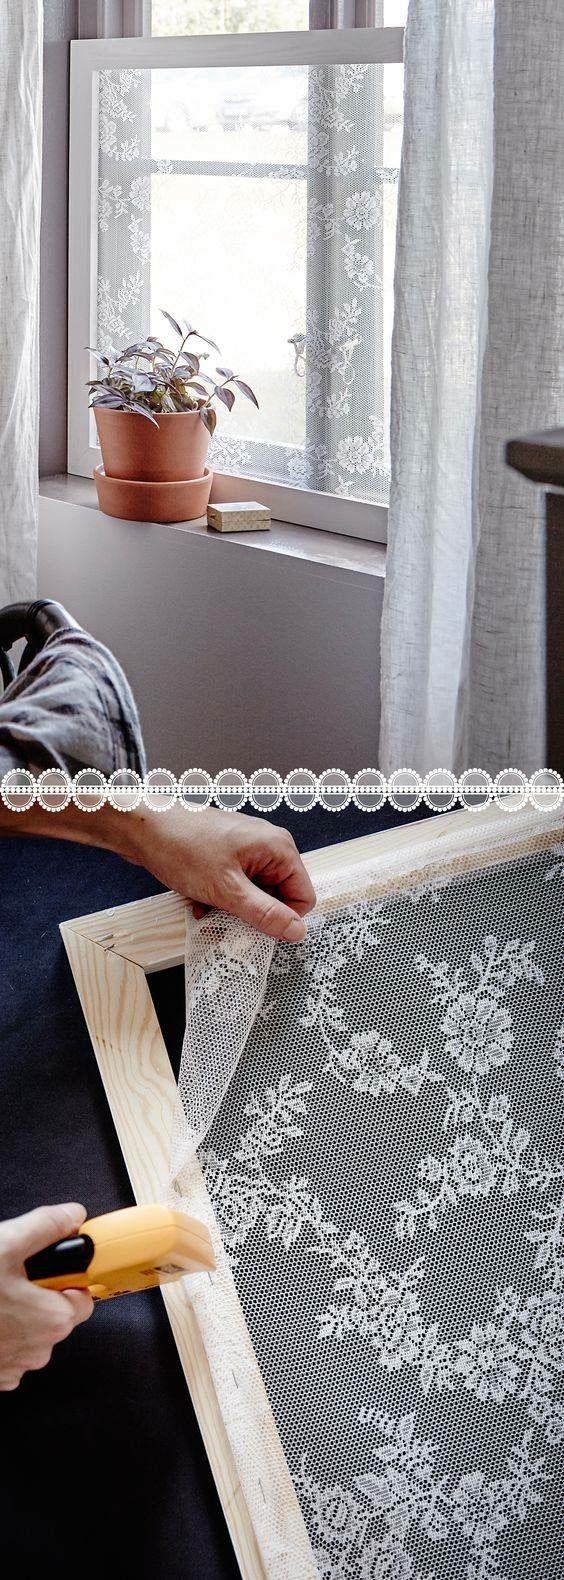 Wonderful Lace Window Sheers stretched and mounted on removable frames for privacy shades – curtains frosted window lace bathroom window ideas for renters or homeowners